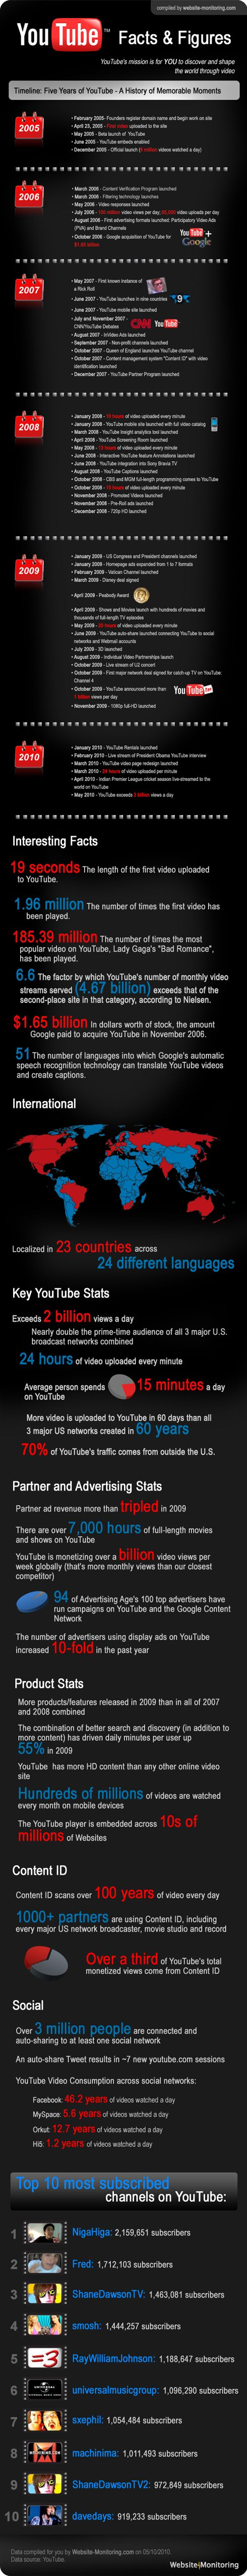 YouTube Statistics - Facts and Figures #Infographic